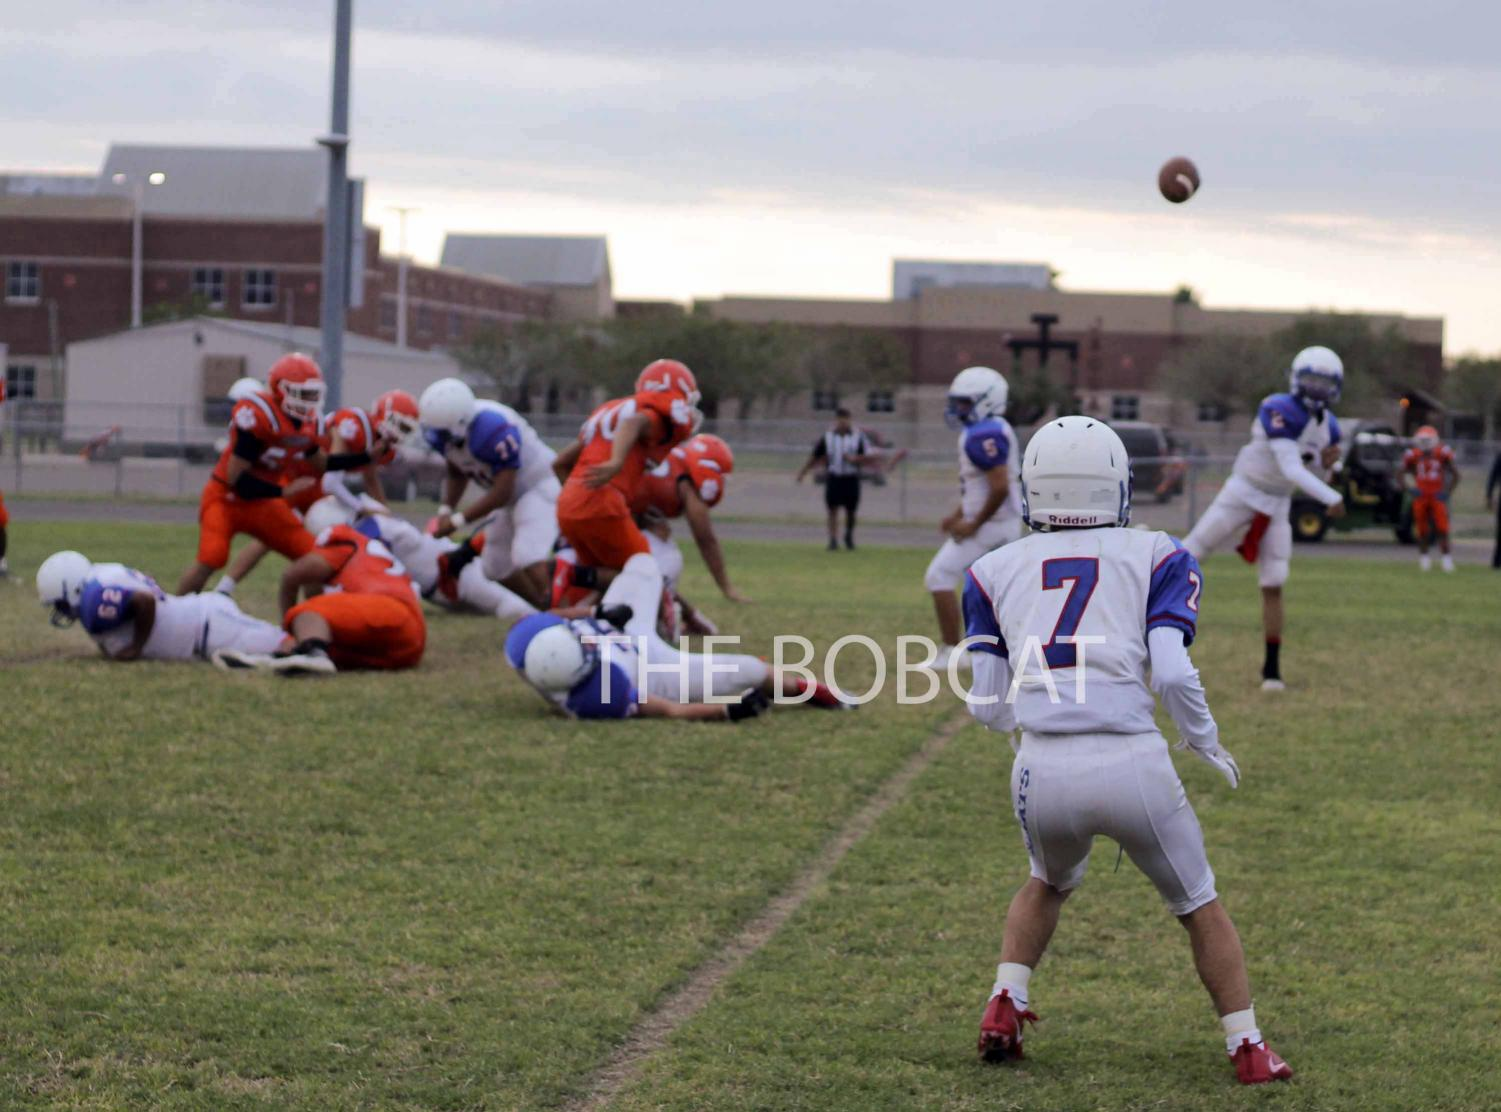 Freshman Raul Ramirez gets in position to receive the ball from the quarterback to make the play against Economedes.